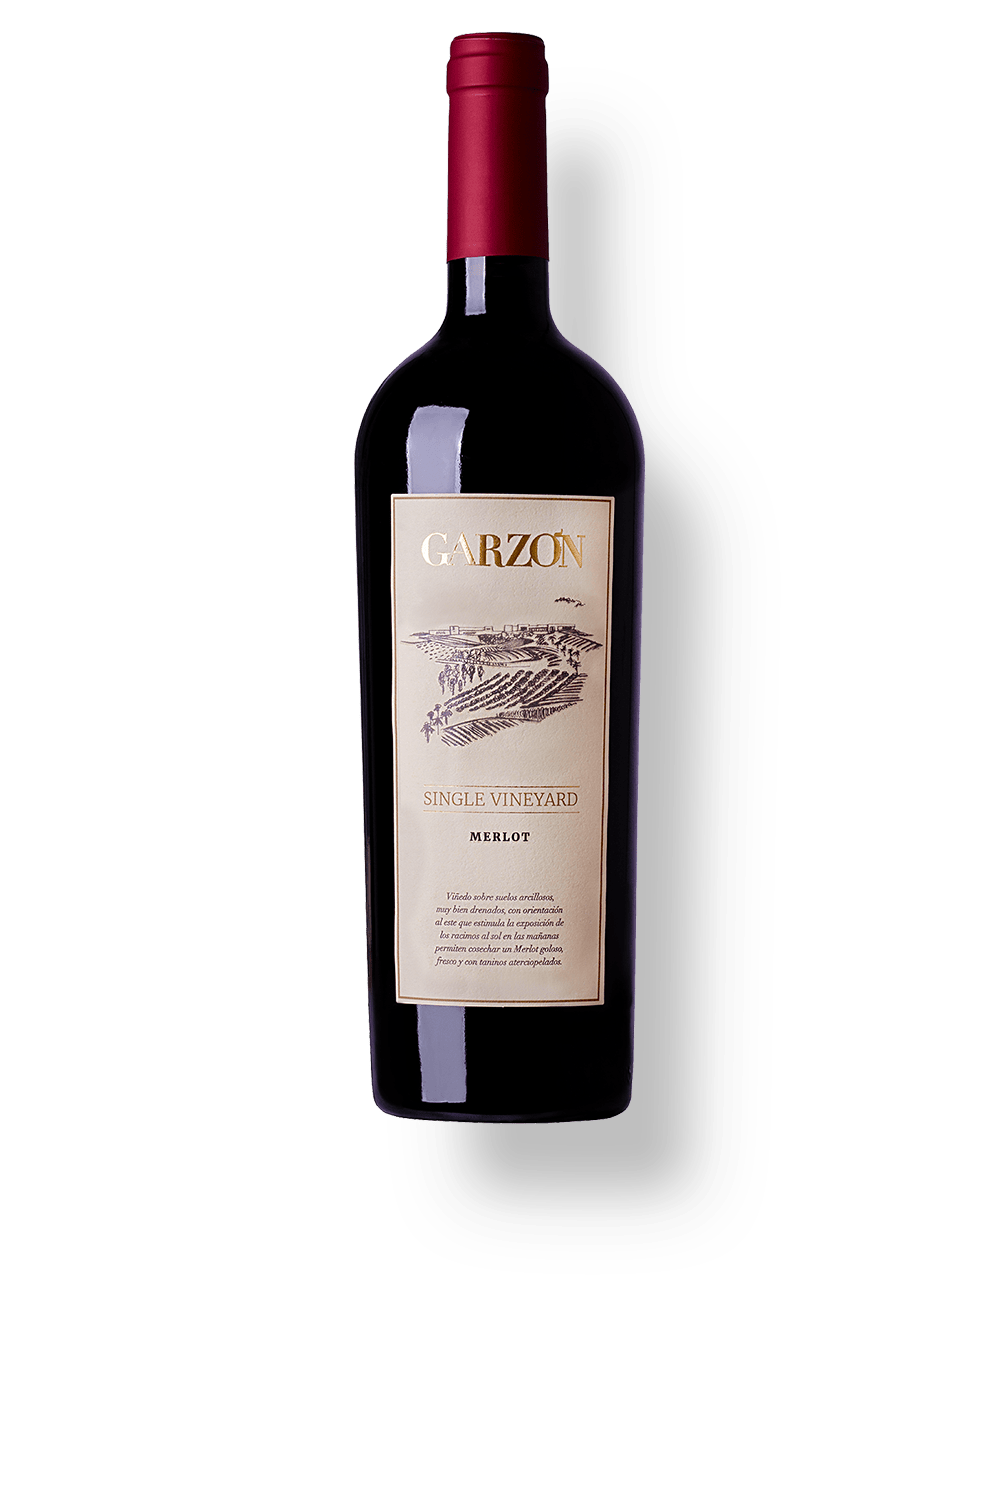 Garzon-Single-Vineyard-Merlot